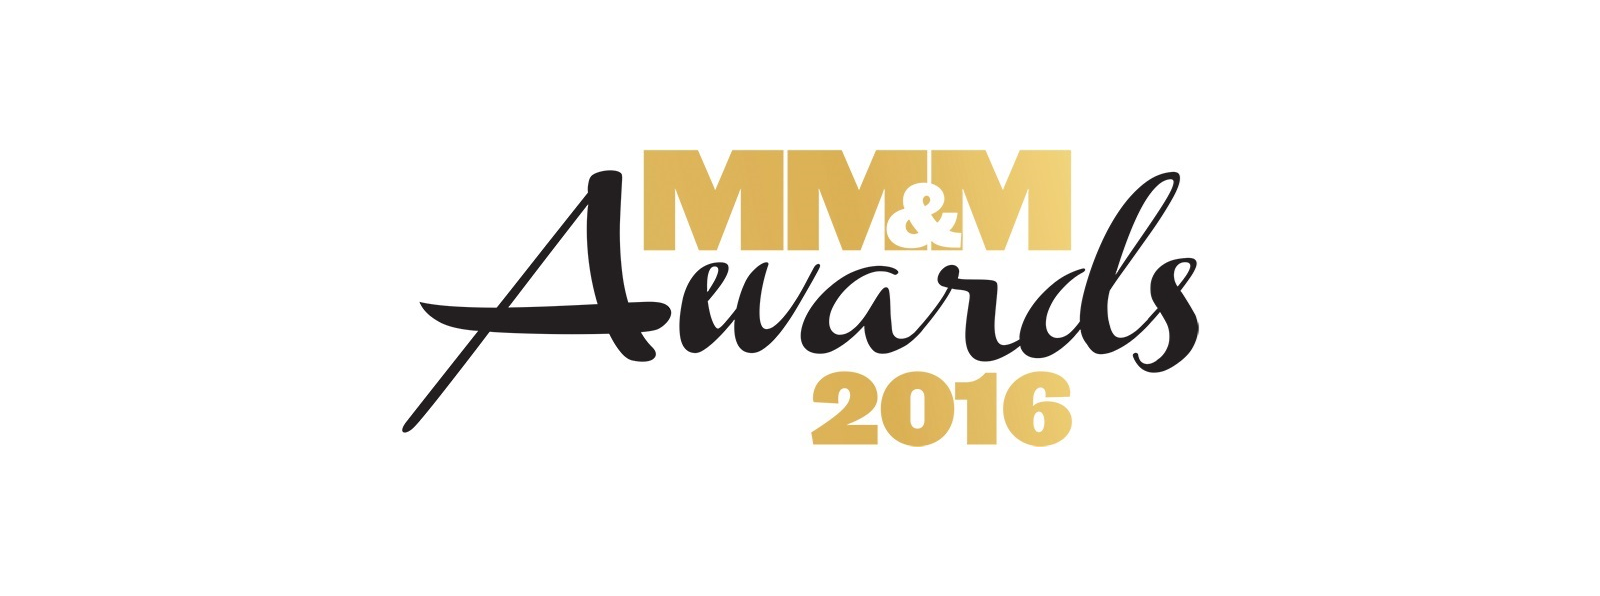 The 2016 MM&M Awards is now accepting entries